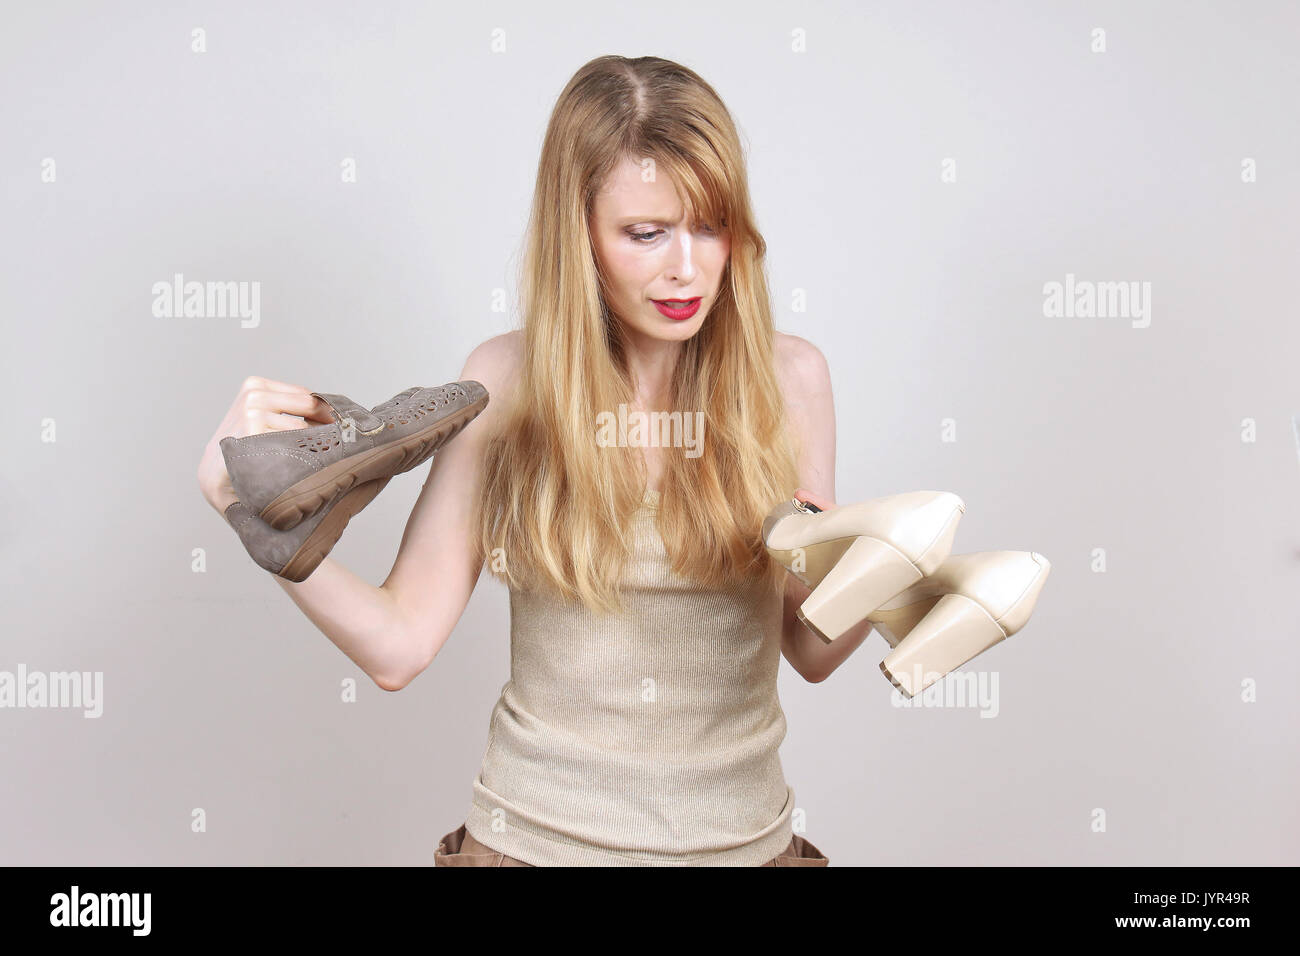 Young woman choosing between high heels and flat comfortable shoes - Stock Image